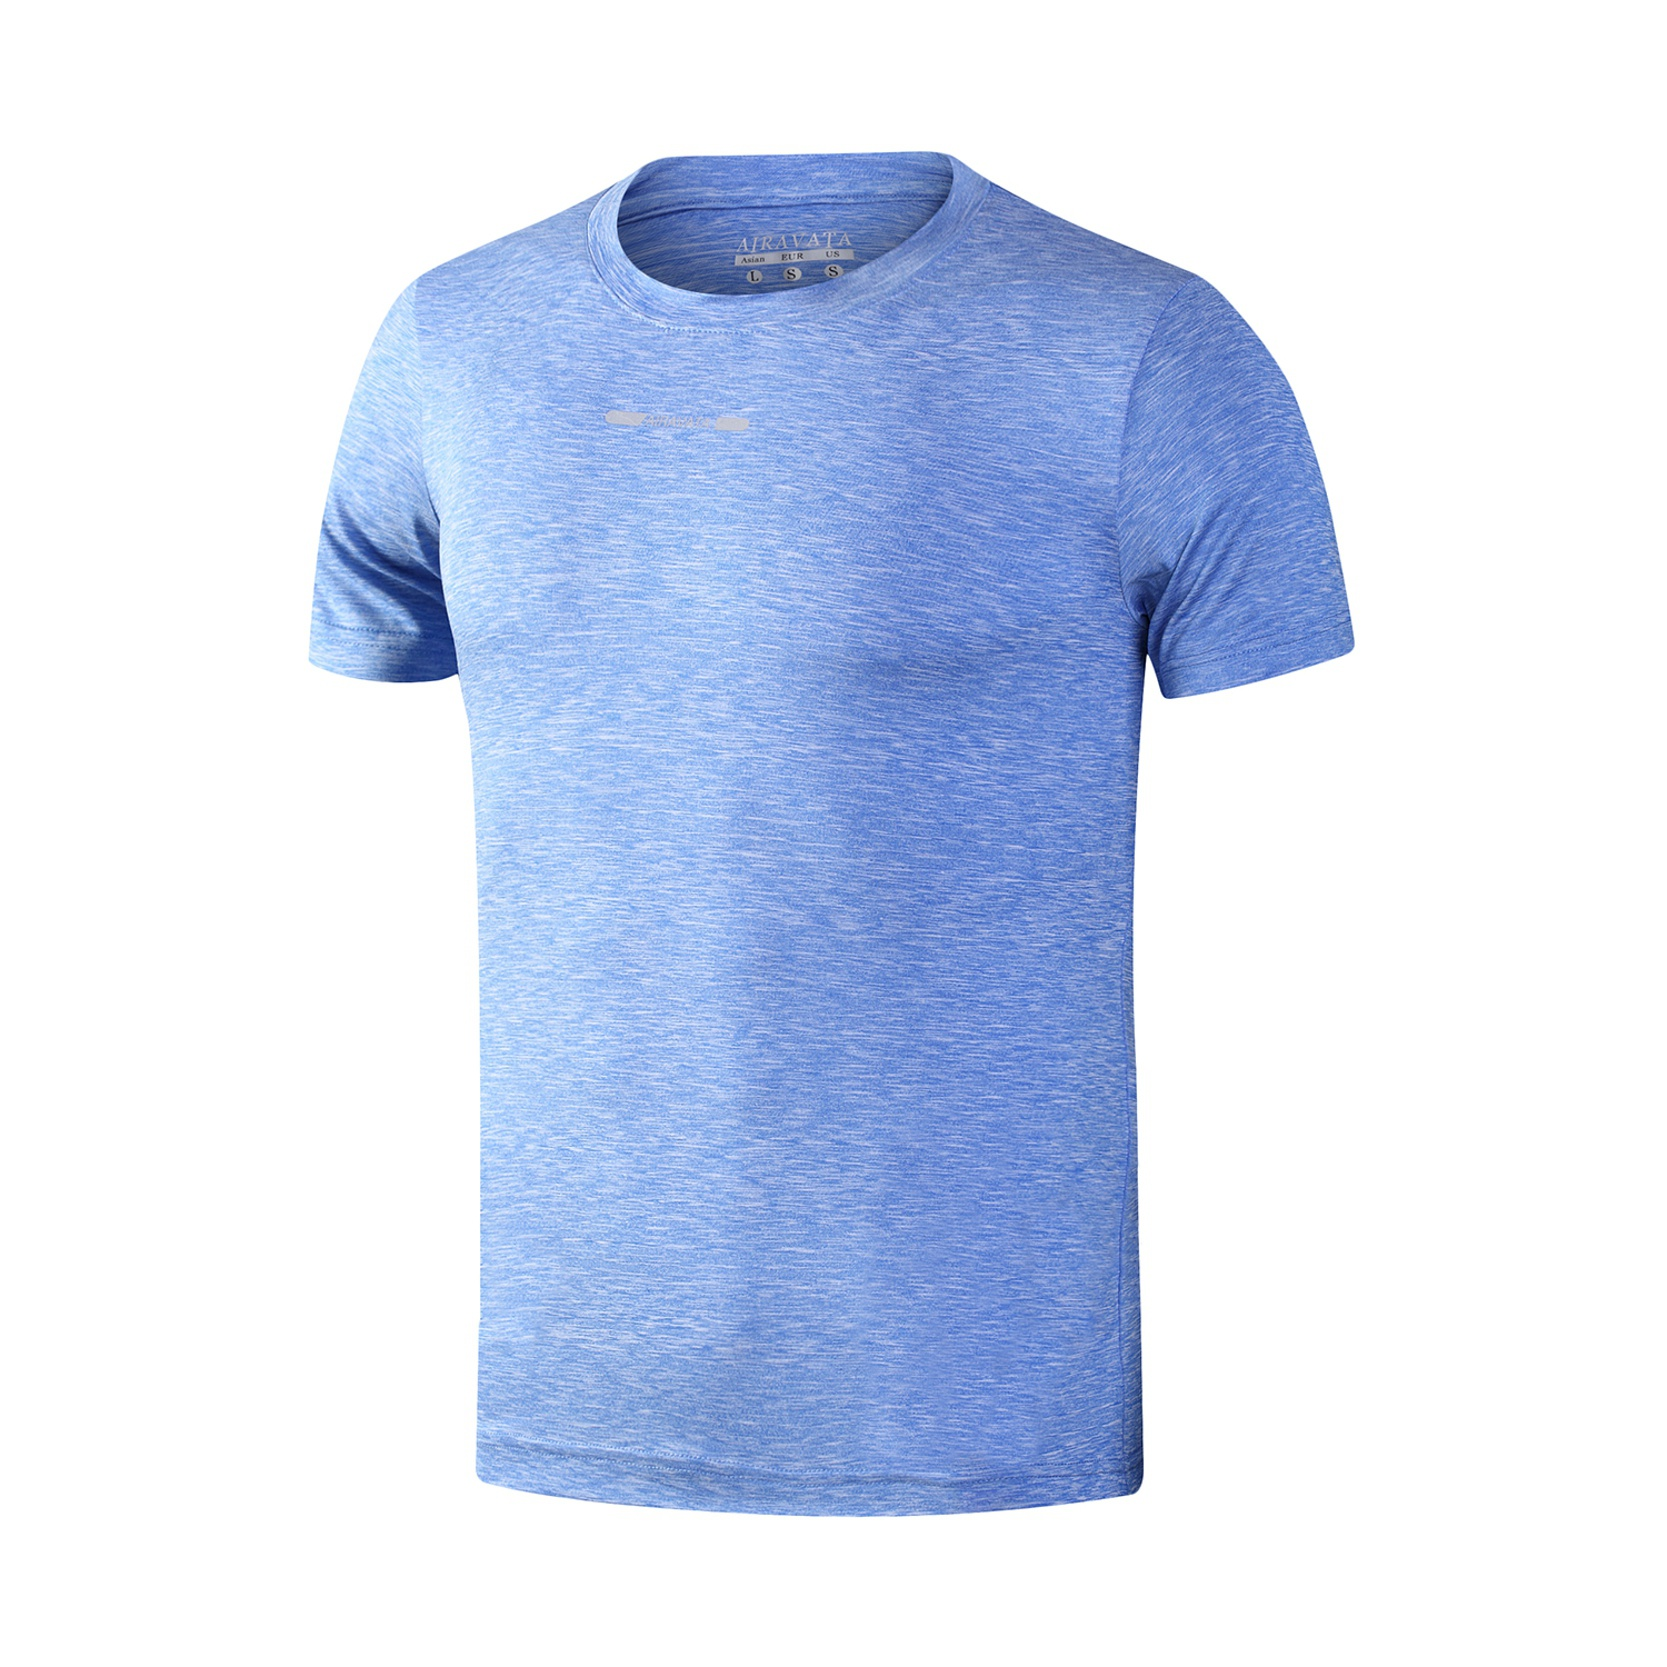 Design t shirt for cheap - 2017 New Fashion Cool Fluorescence T Shirt Men Short Sleeves O Neck Casual Solid Color Simple Design Trendy Summer T Shirt Male